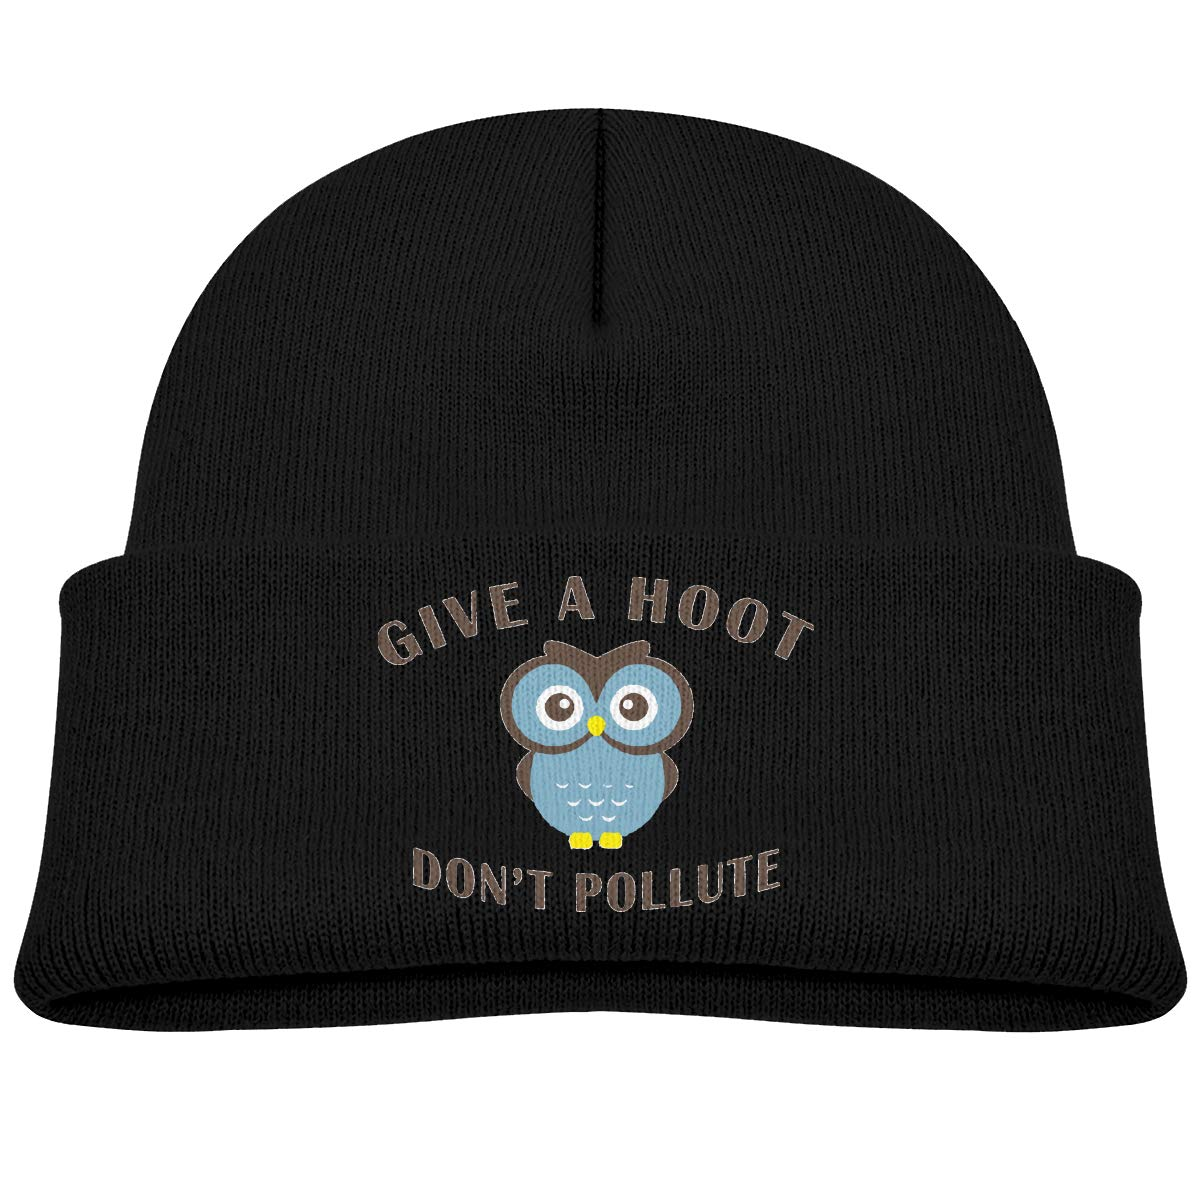 Kids Knitted Beanies Hat Give A Hoot,Dont Pollute Winter Hat Knitted Skull Cap For Boys Girls Blue